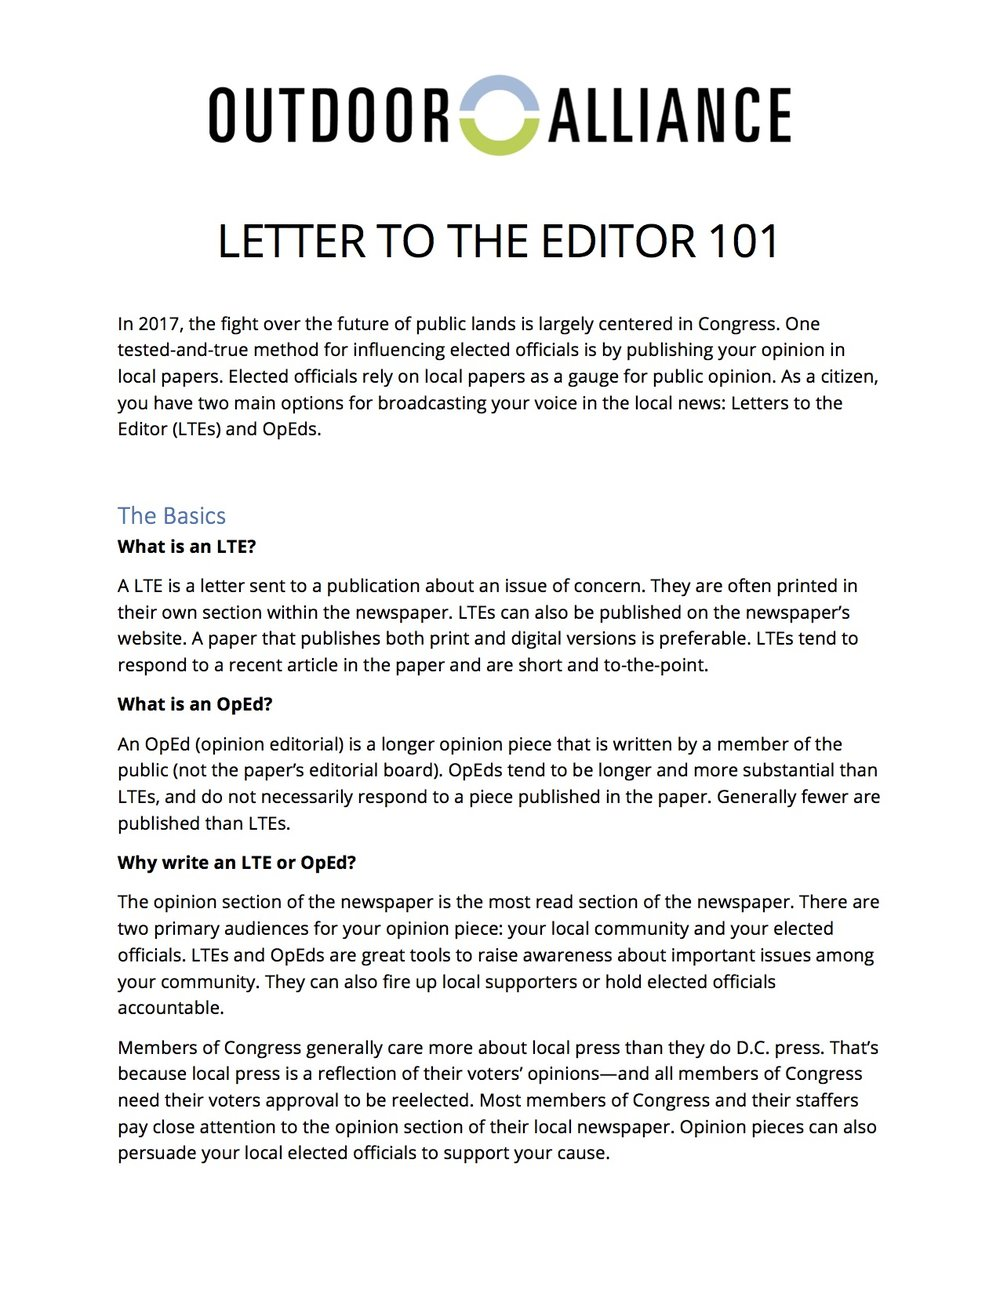 How To Write A Letter To The Editor  Outdoor Alliance